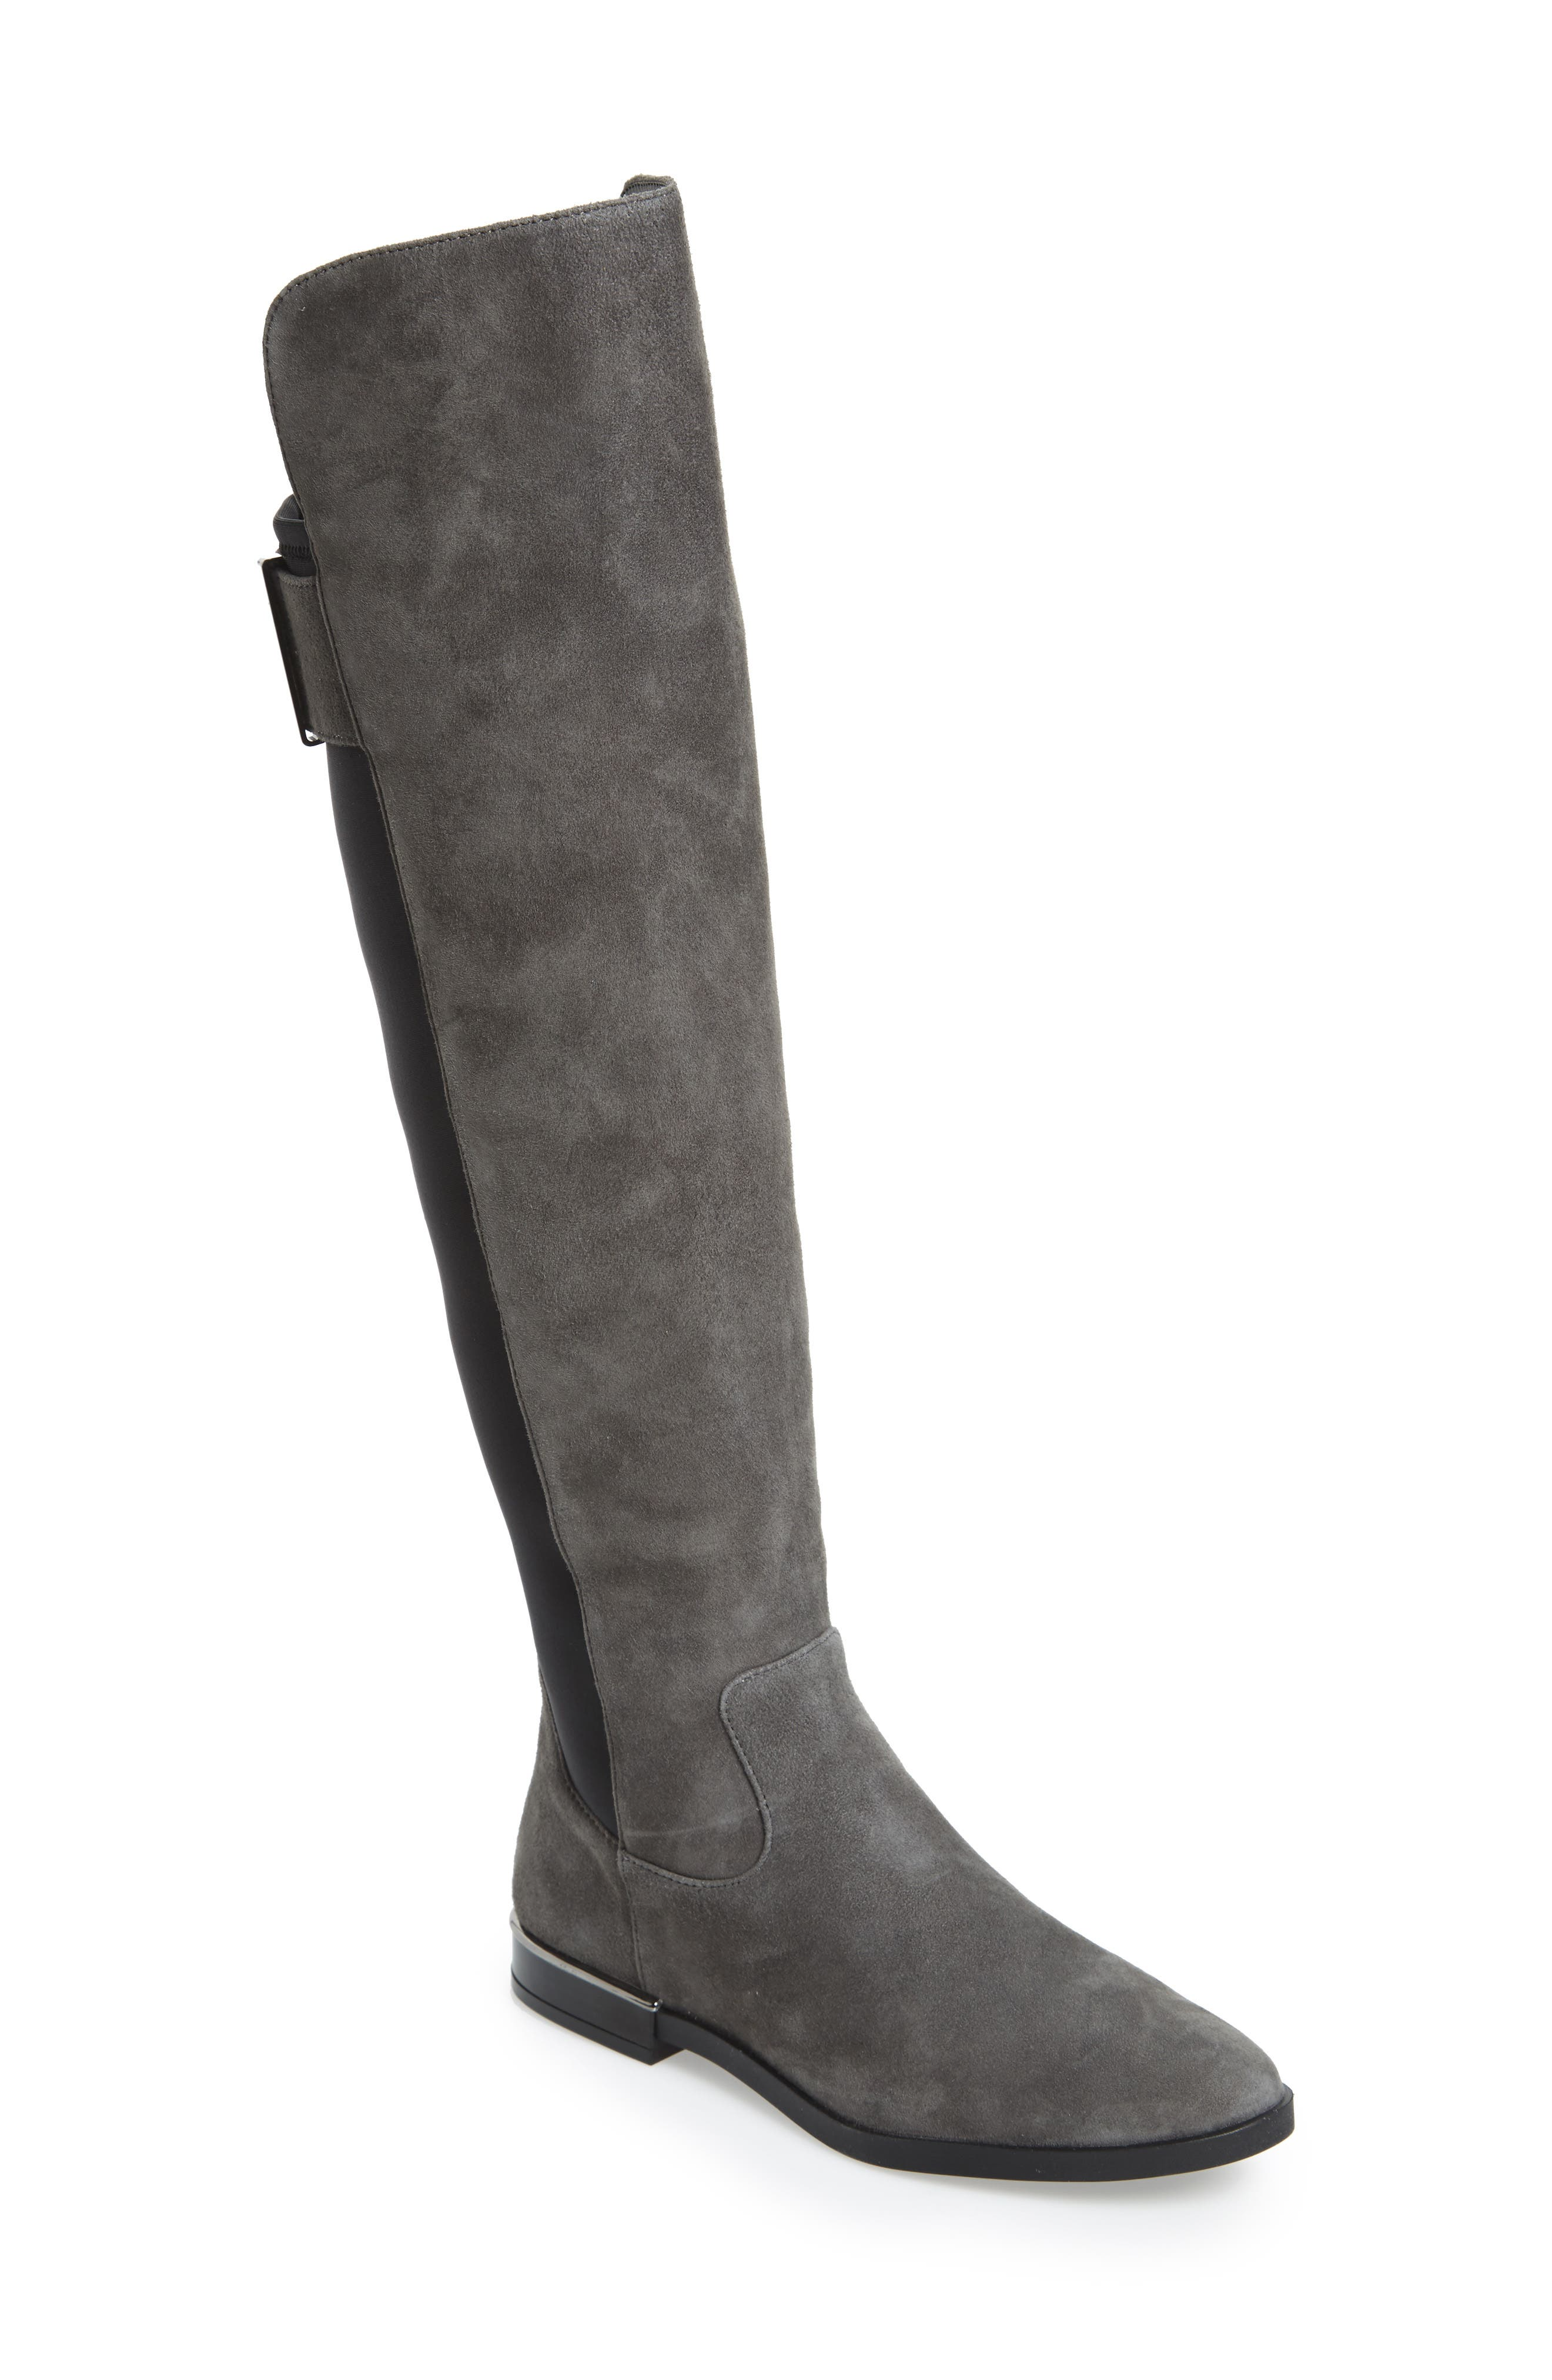 Priya Over the Knee Boot,                             Main thumbnail 1, color,                             Slate/ Black Suede